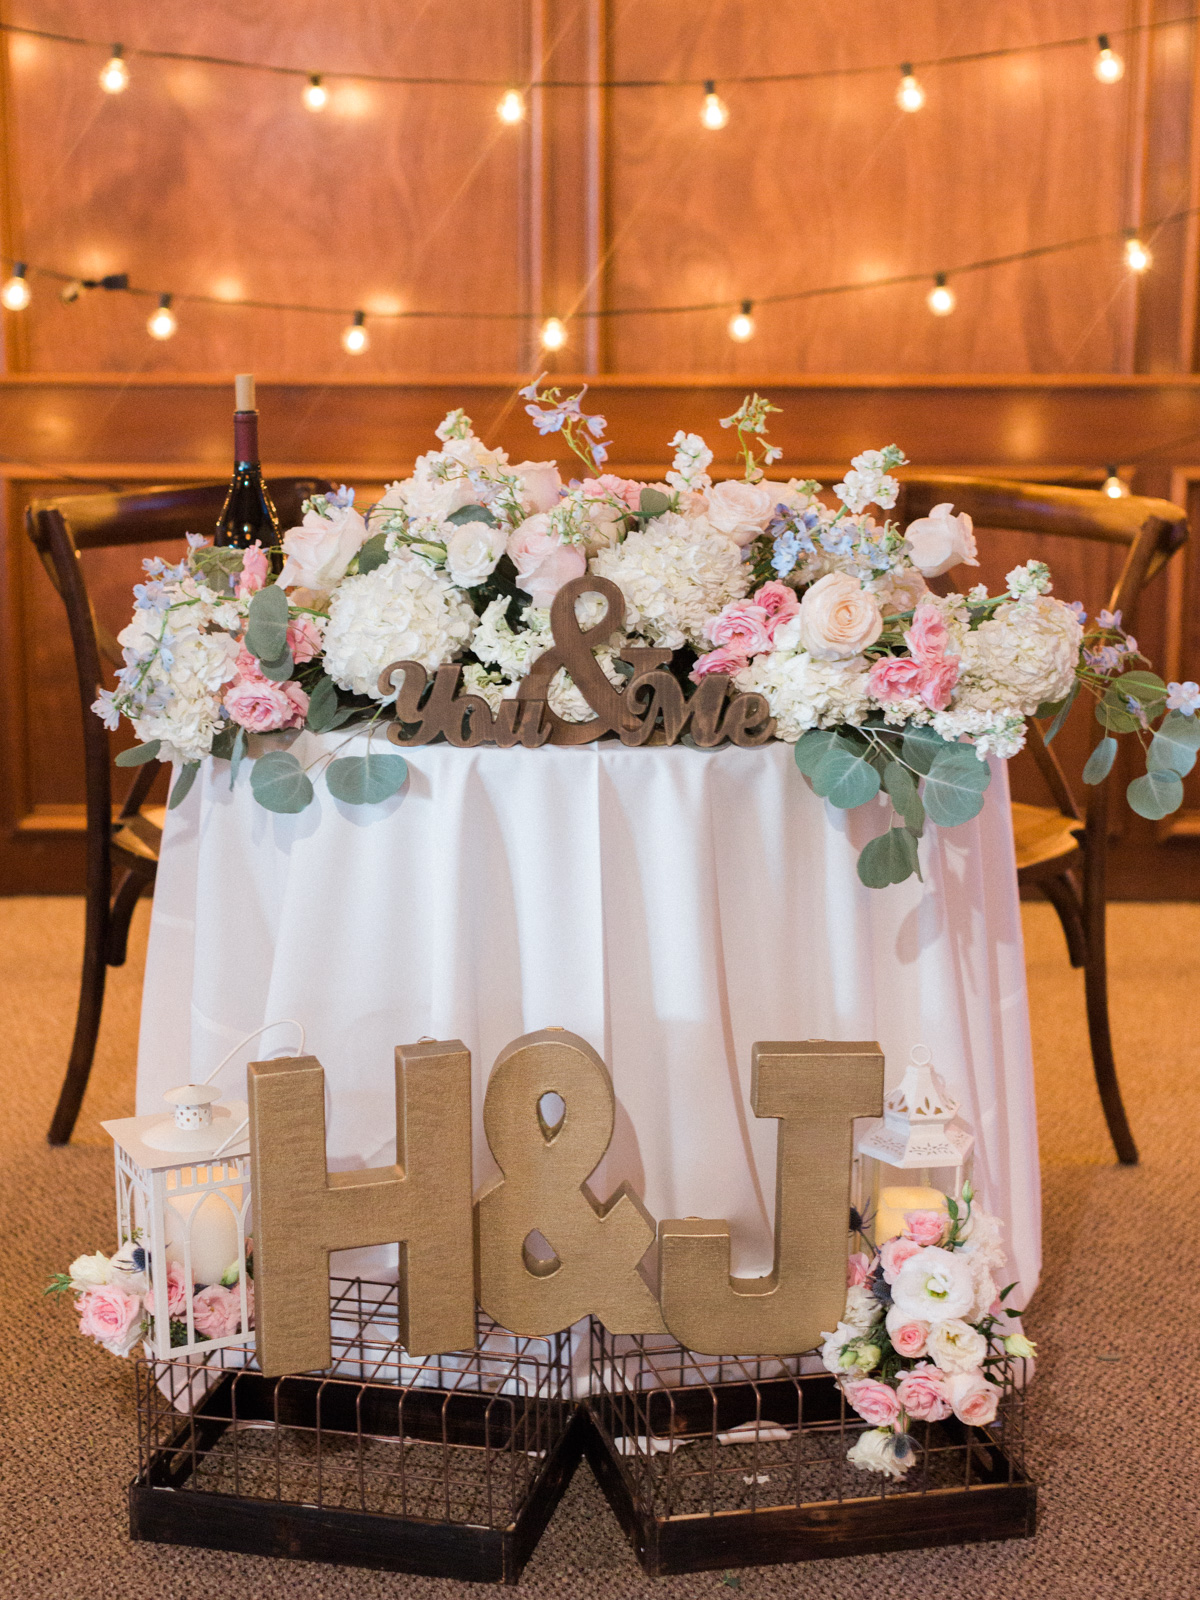 Gorgeous sweetheart table with florals by Soiree Design & Events | Harrison & Jocelyne's gorgeous Temecula wedding day at Wiens Family Cellars captured by Temecula wedding photographers Betsy & John